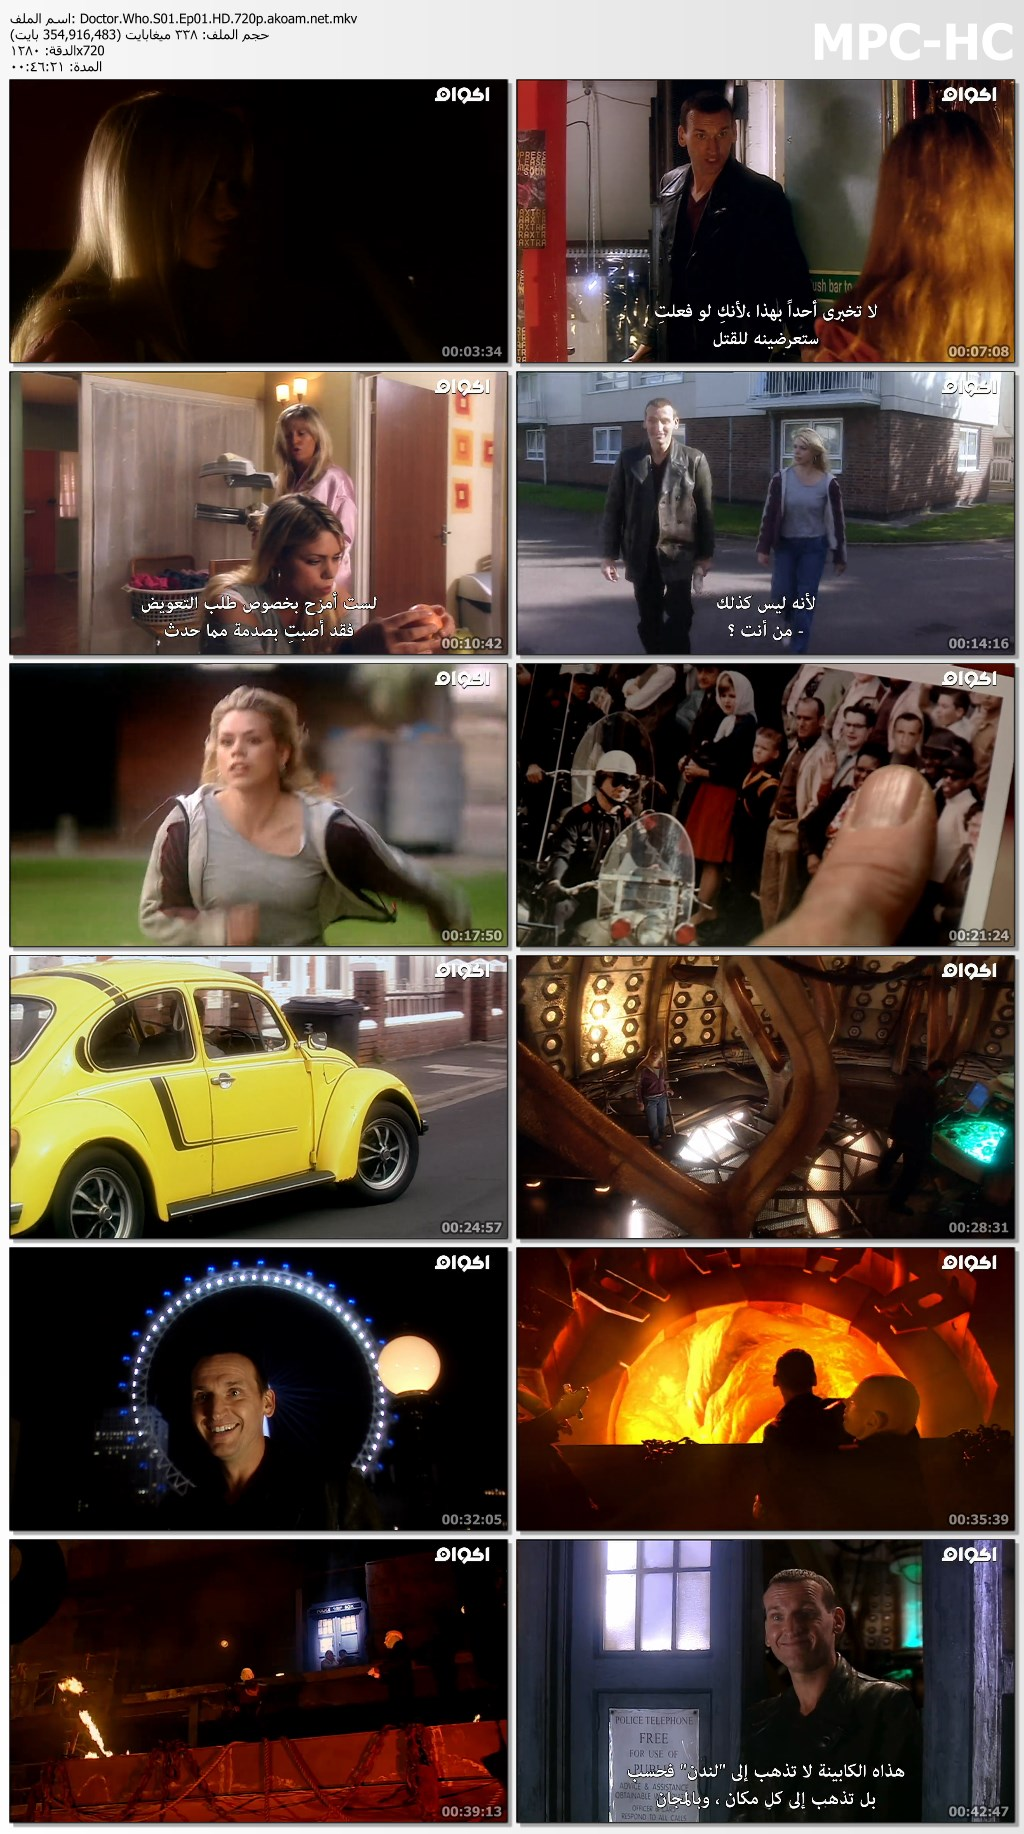 Doctor Who,Doctor Who S01,Doctor Who مترجم,Doctor Who الموسم الاول,دكتور هو,دكتور هو الموسم الاول,دكتور هو مترجم